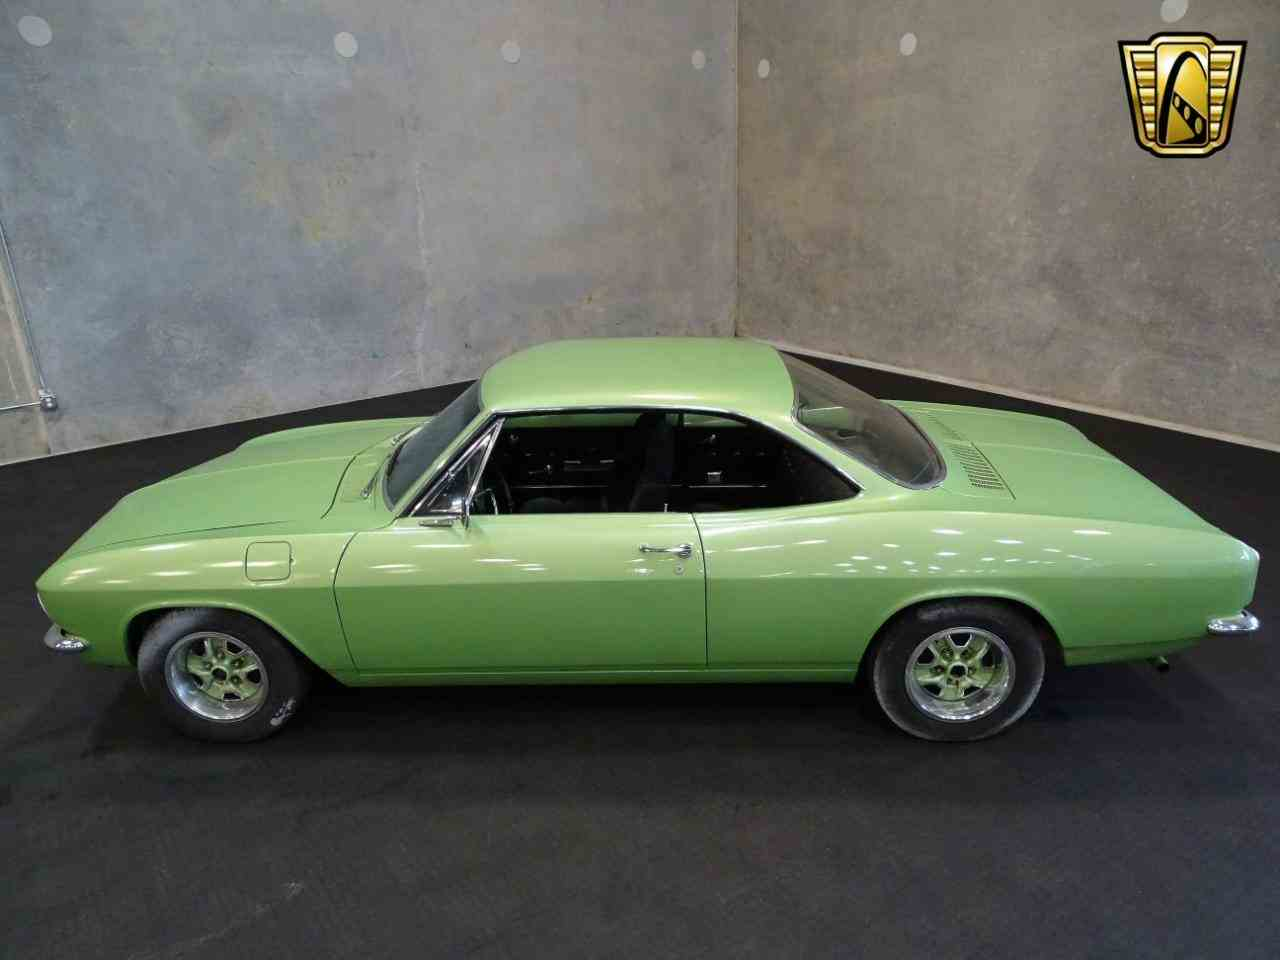 Large Picture of '66 Corvair - $10,995.00 - KDJM